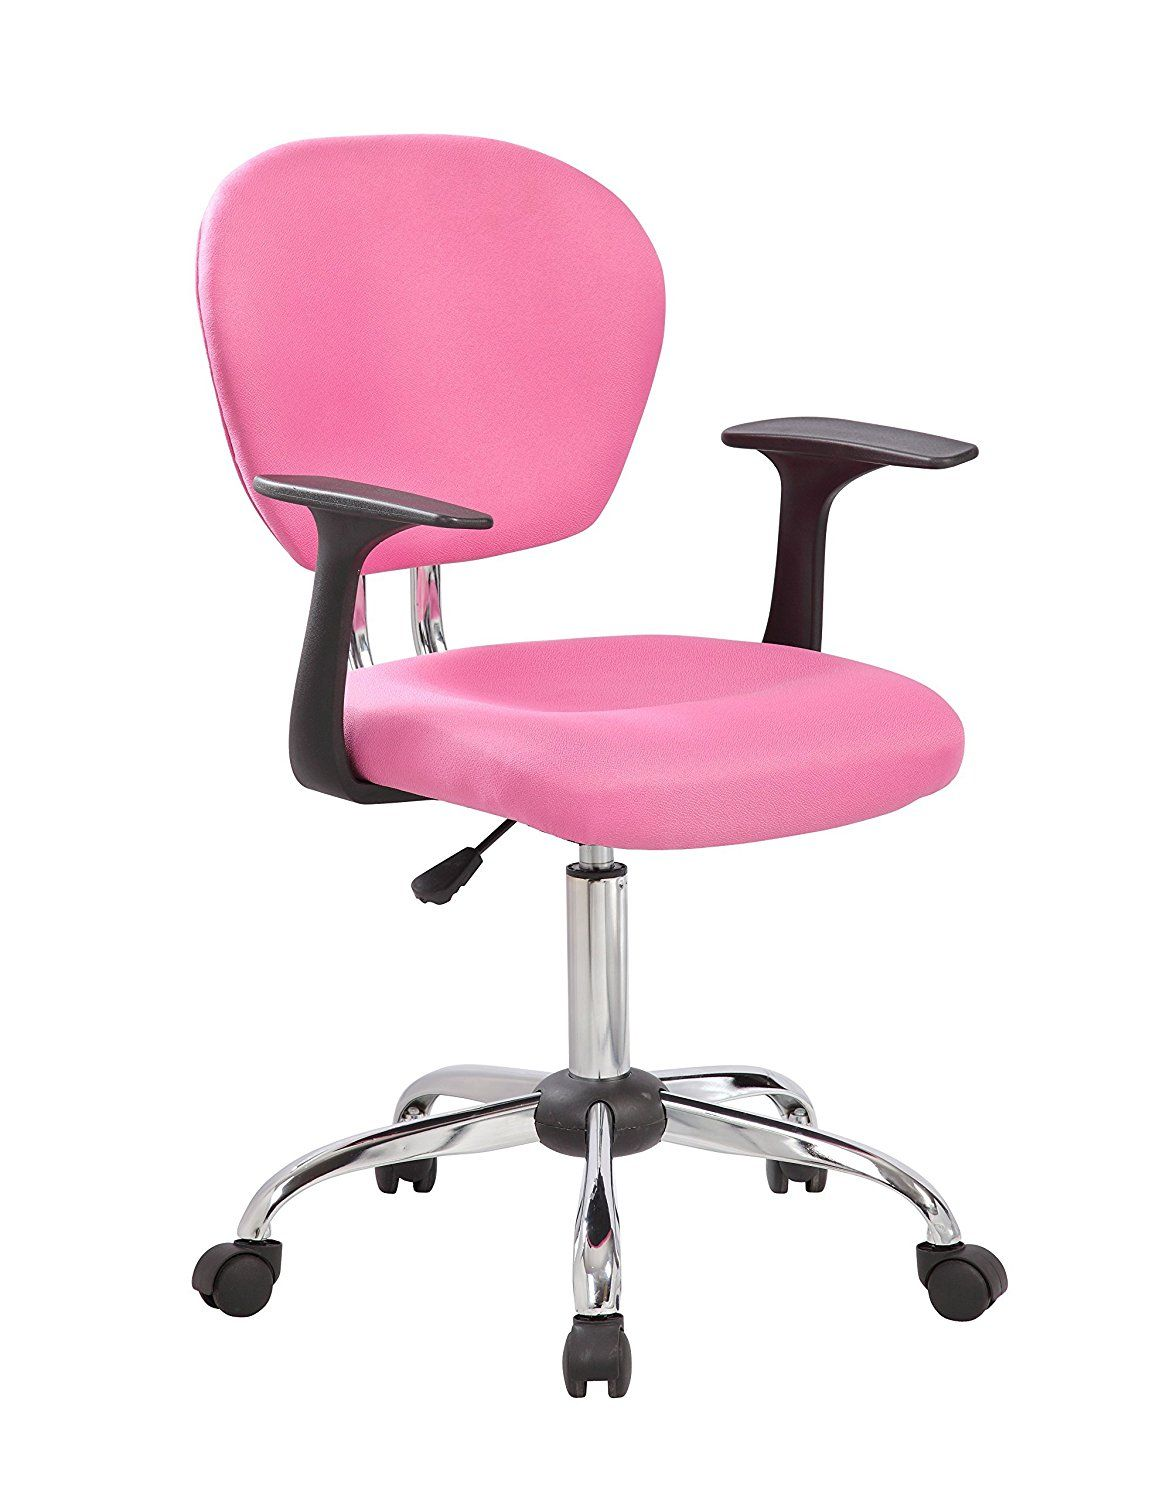 ANJI Modern Furniture Adjustable Mid Back Fabric Swivel Office Desk Computer  Chair with Arms PinkANJI Modern Furniture Adjustable Mid Back Fabric Swivel Office  . Fabric Computer Chair. Home Design Ideas